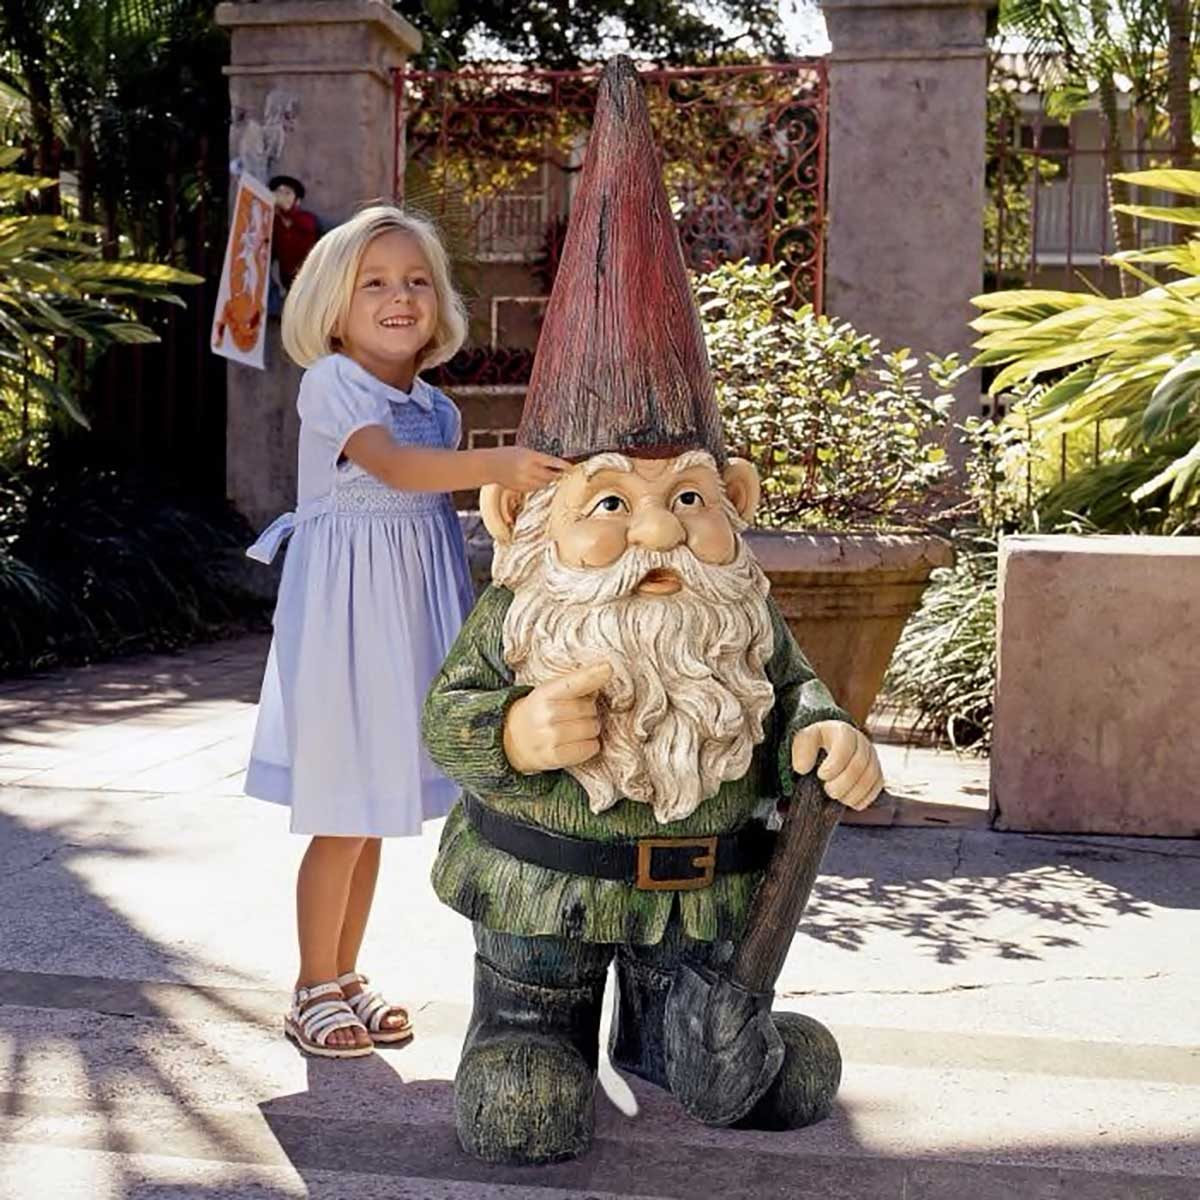 Large garden gnome